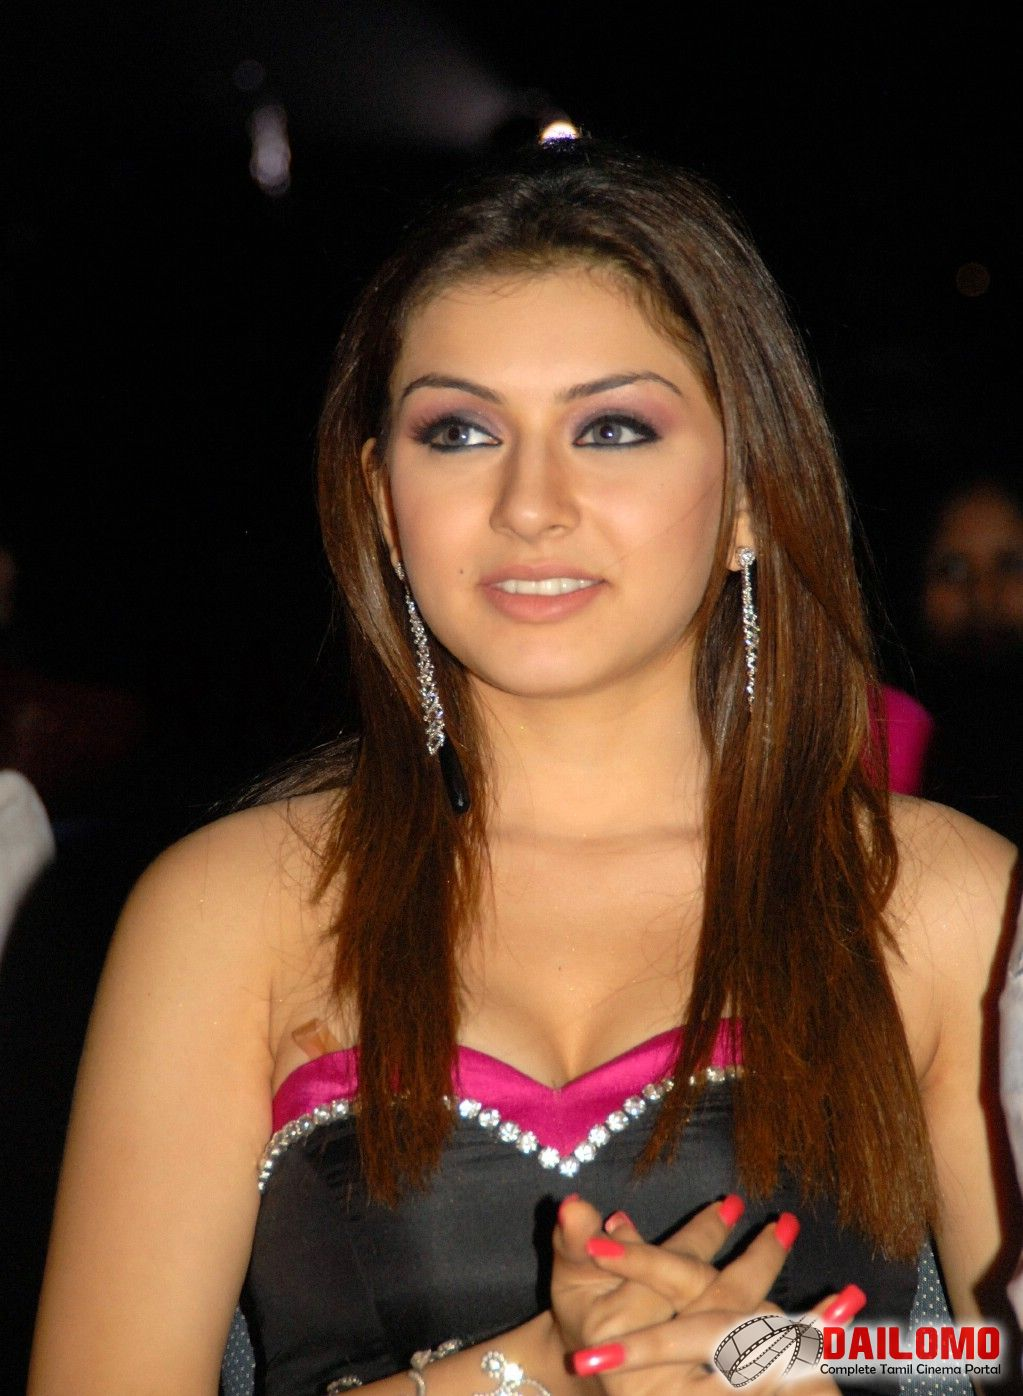 Hansika motwani hot dress - Hansika motwani hq pics - latest 2012